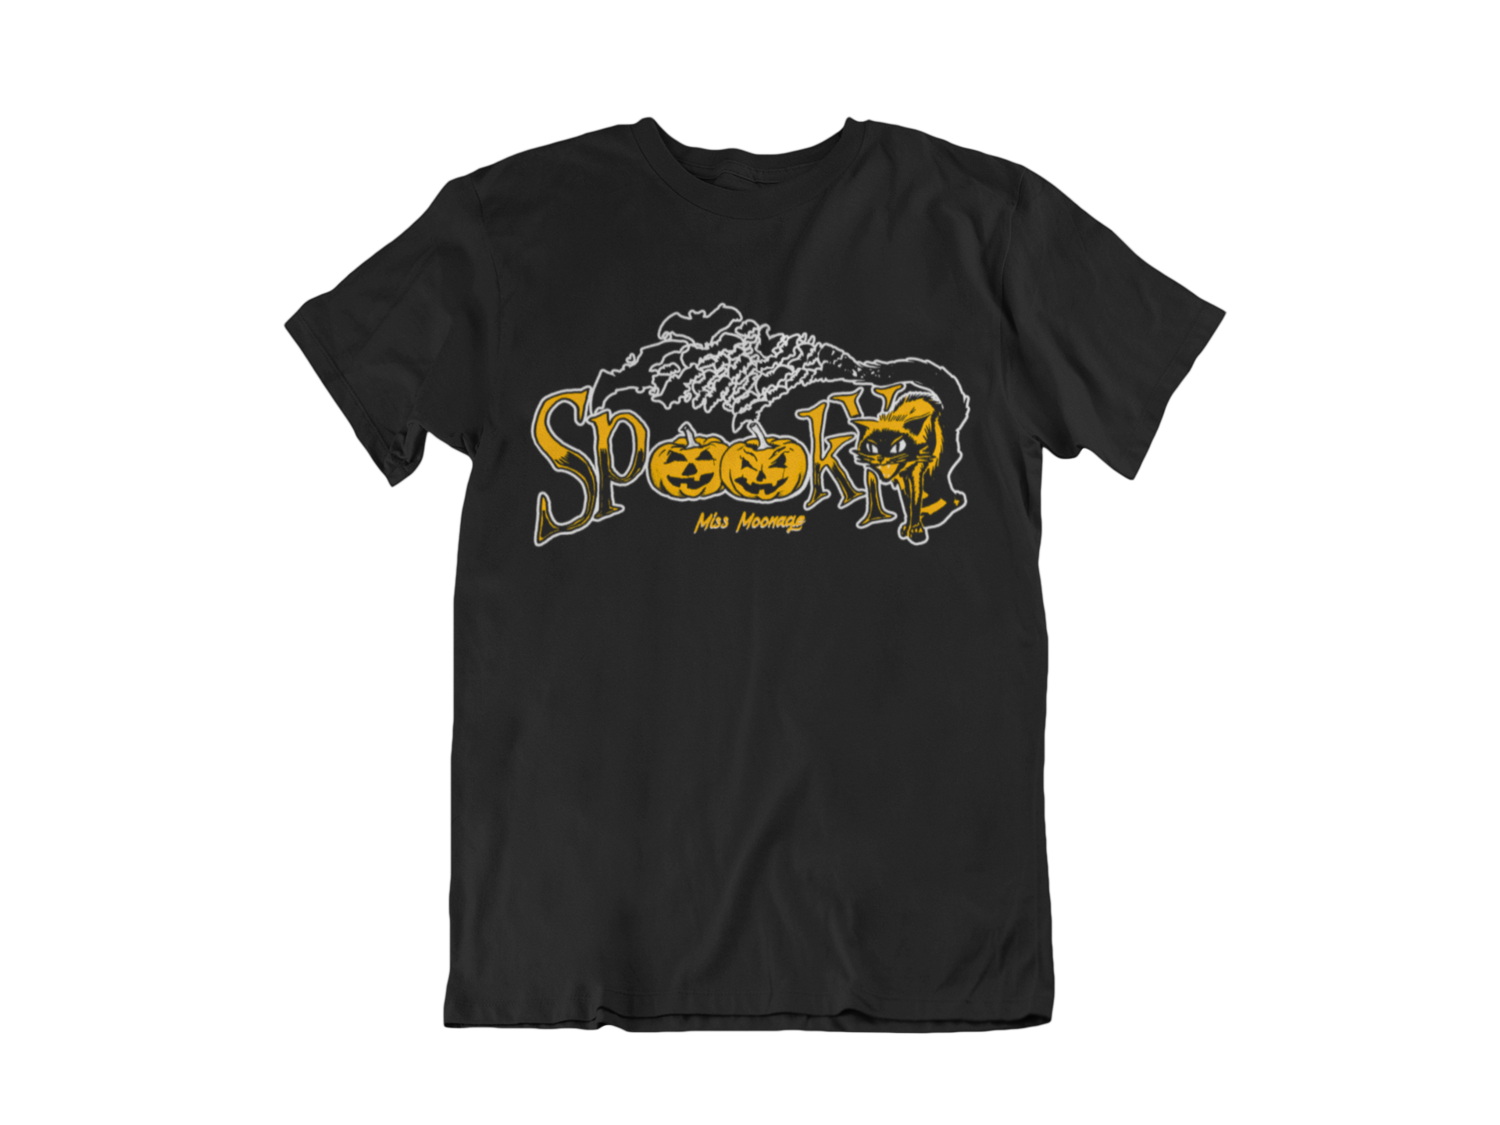 SPOOKY by MISS MOONAGE tshirt for MEN